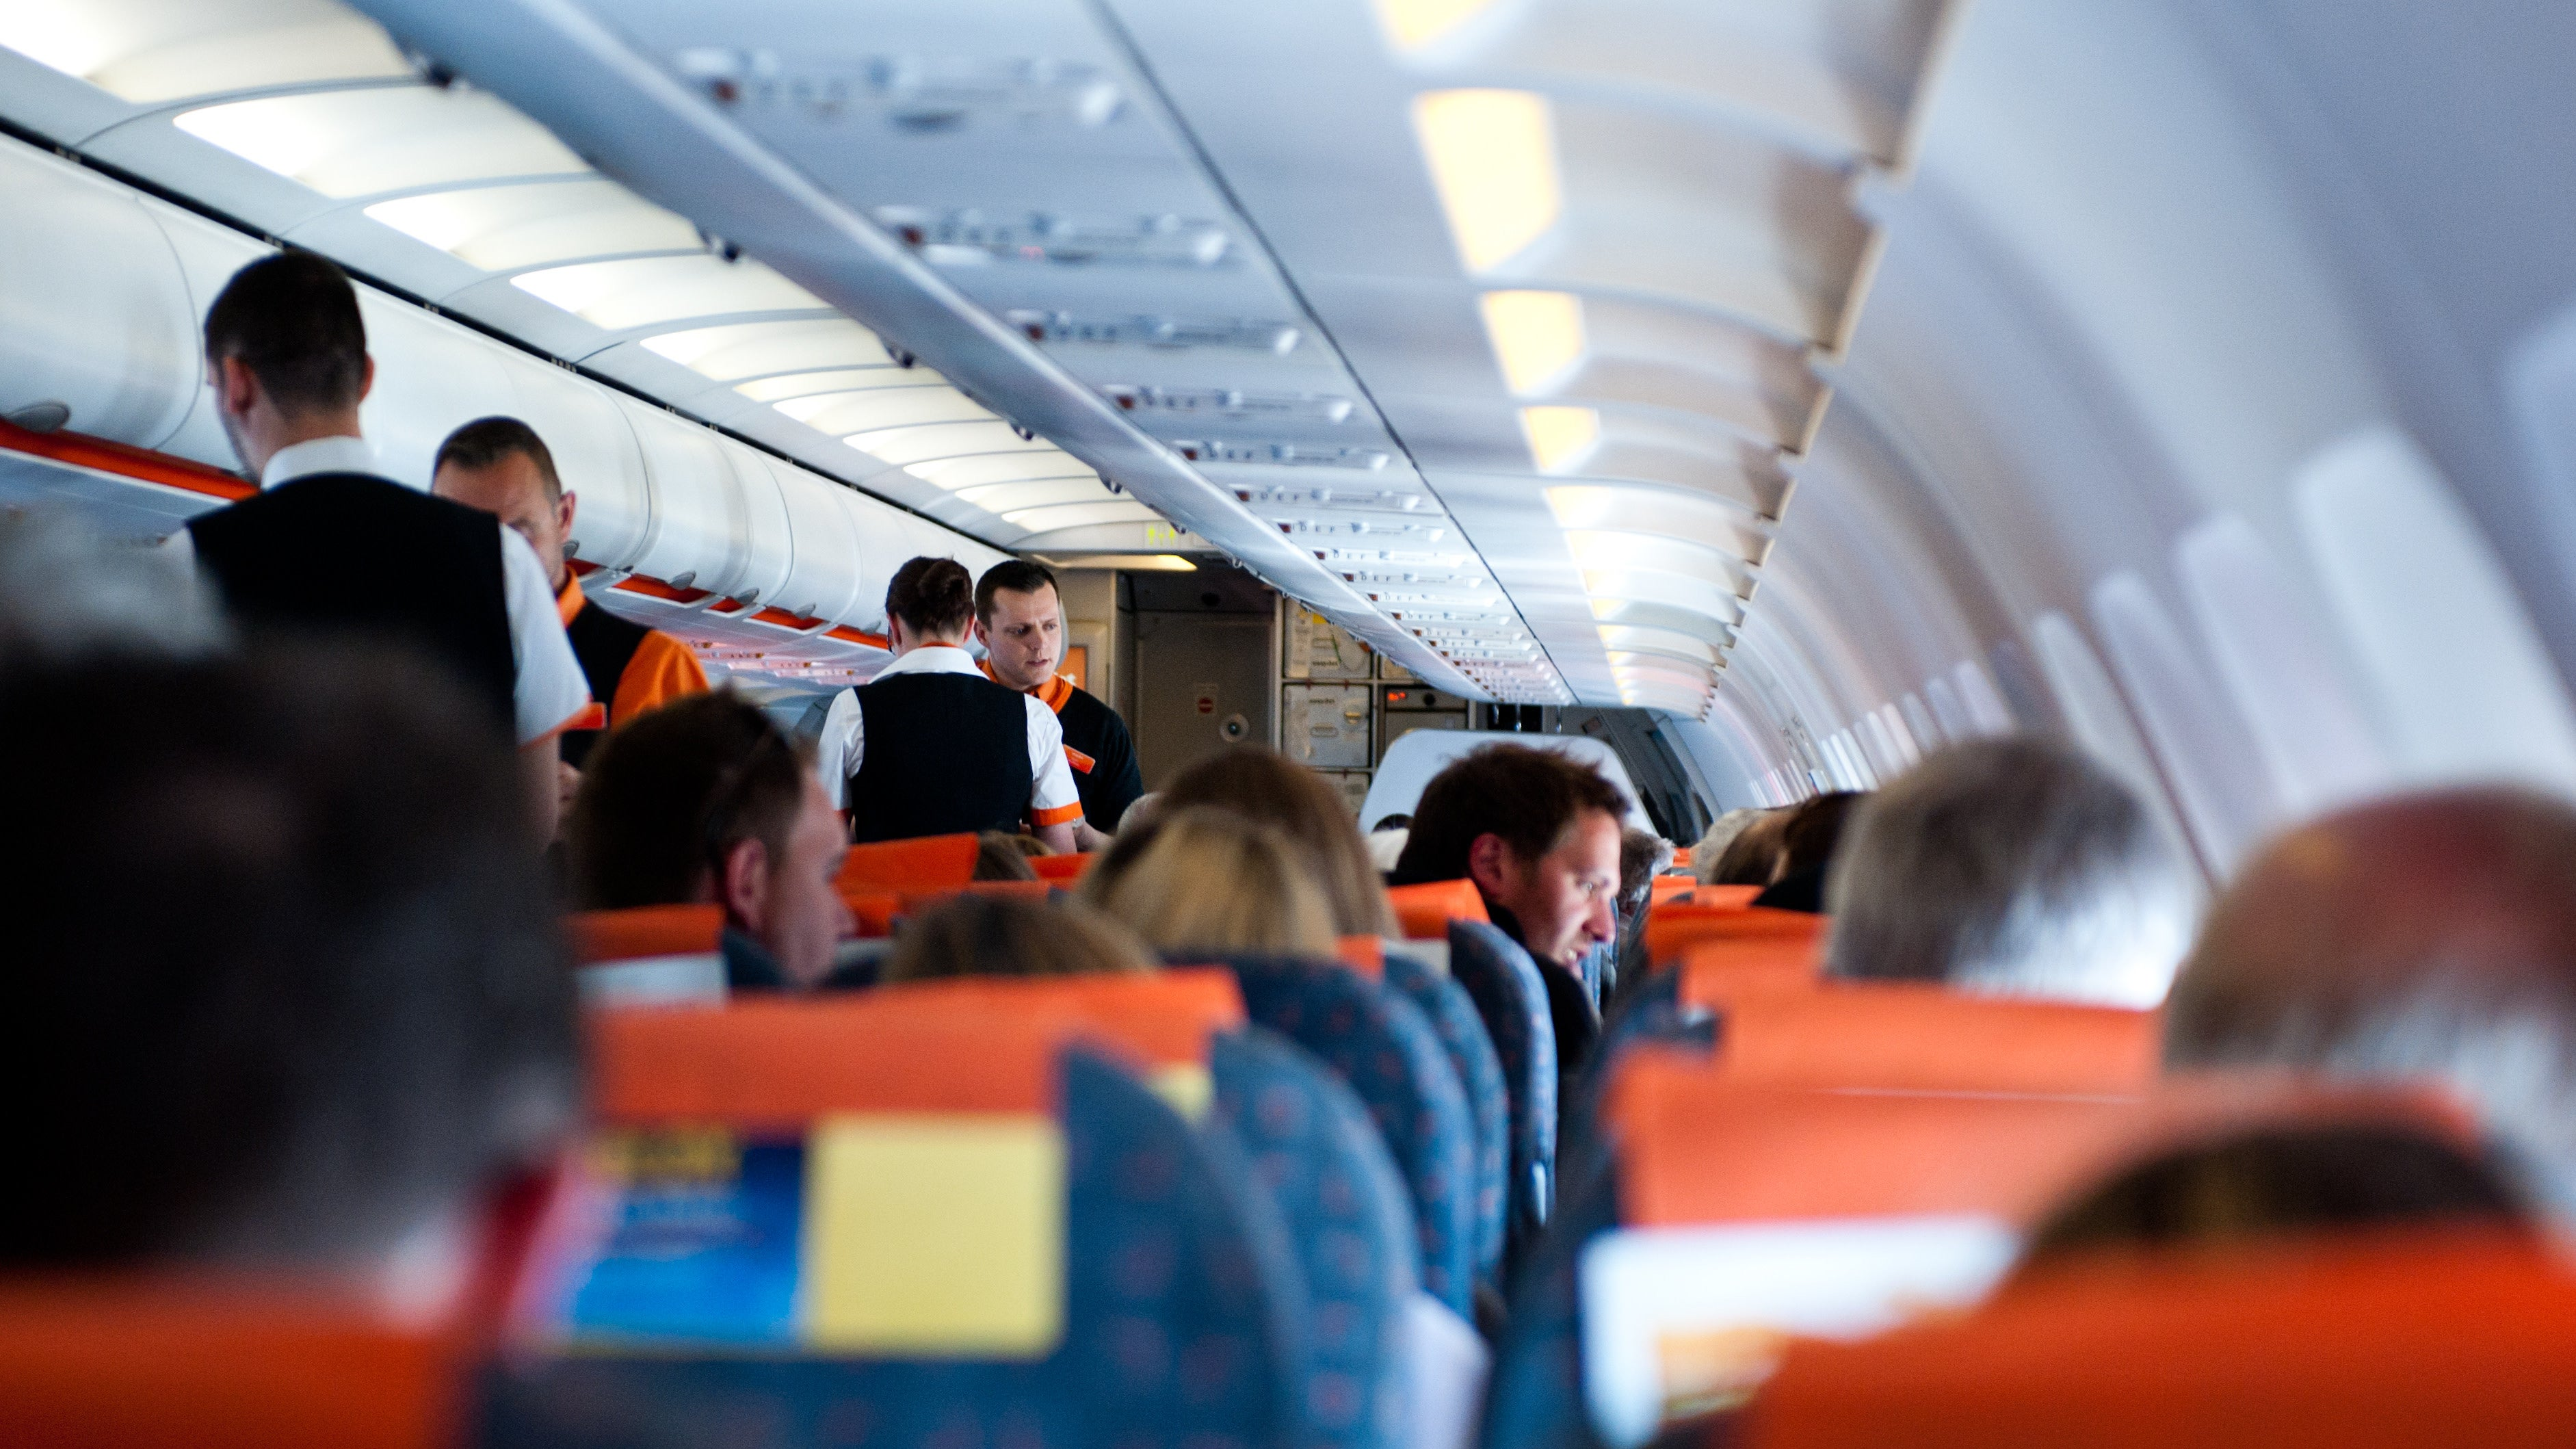 What To Do If You Don't Have A Seat Assignment For A Flight